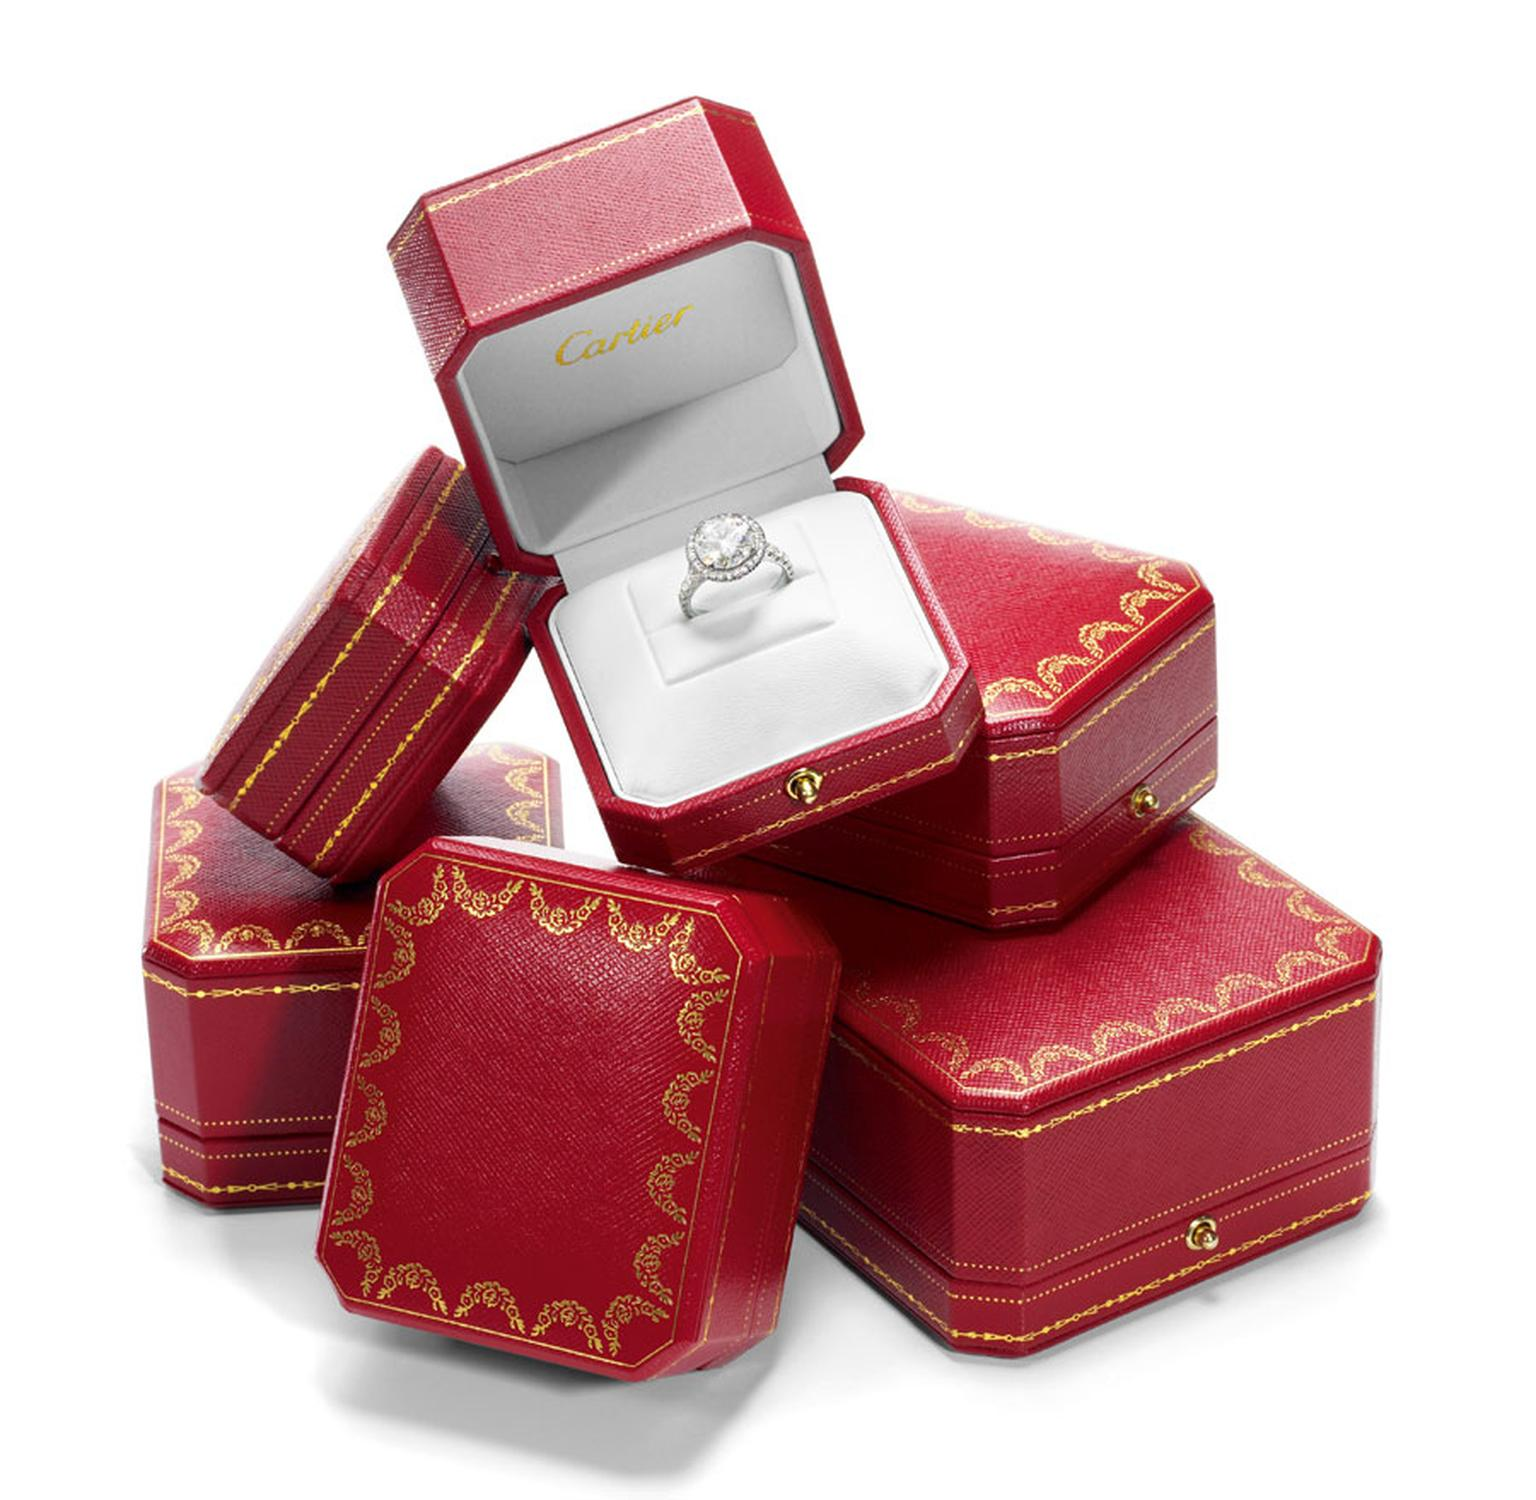 Cartier-Solitaire-Cartier-2.jpg